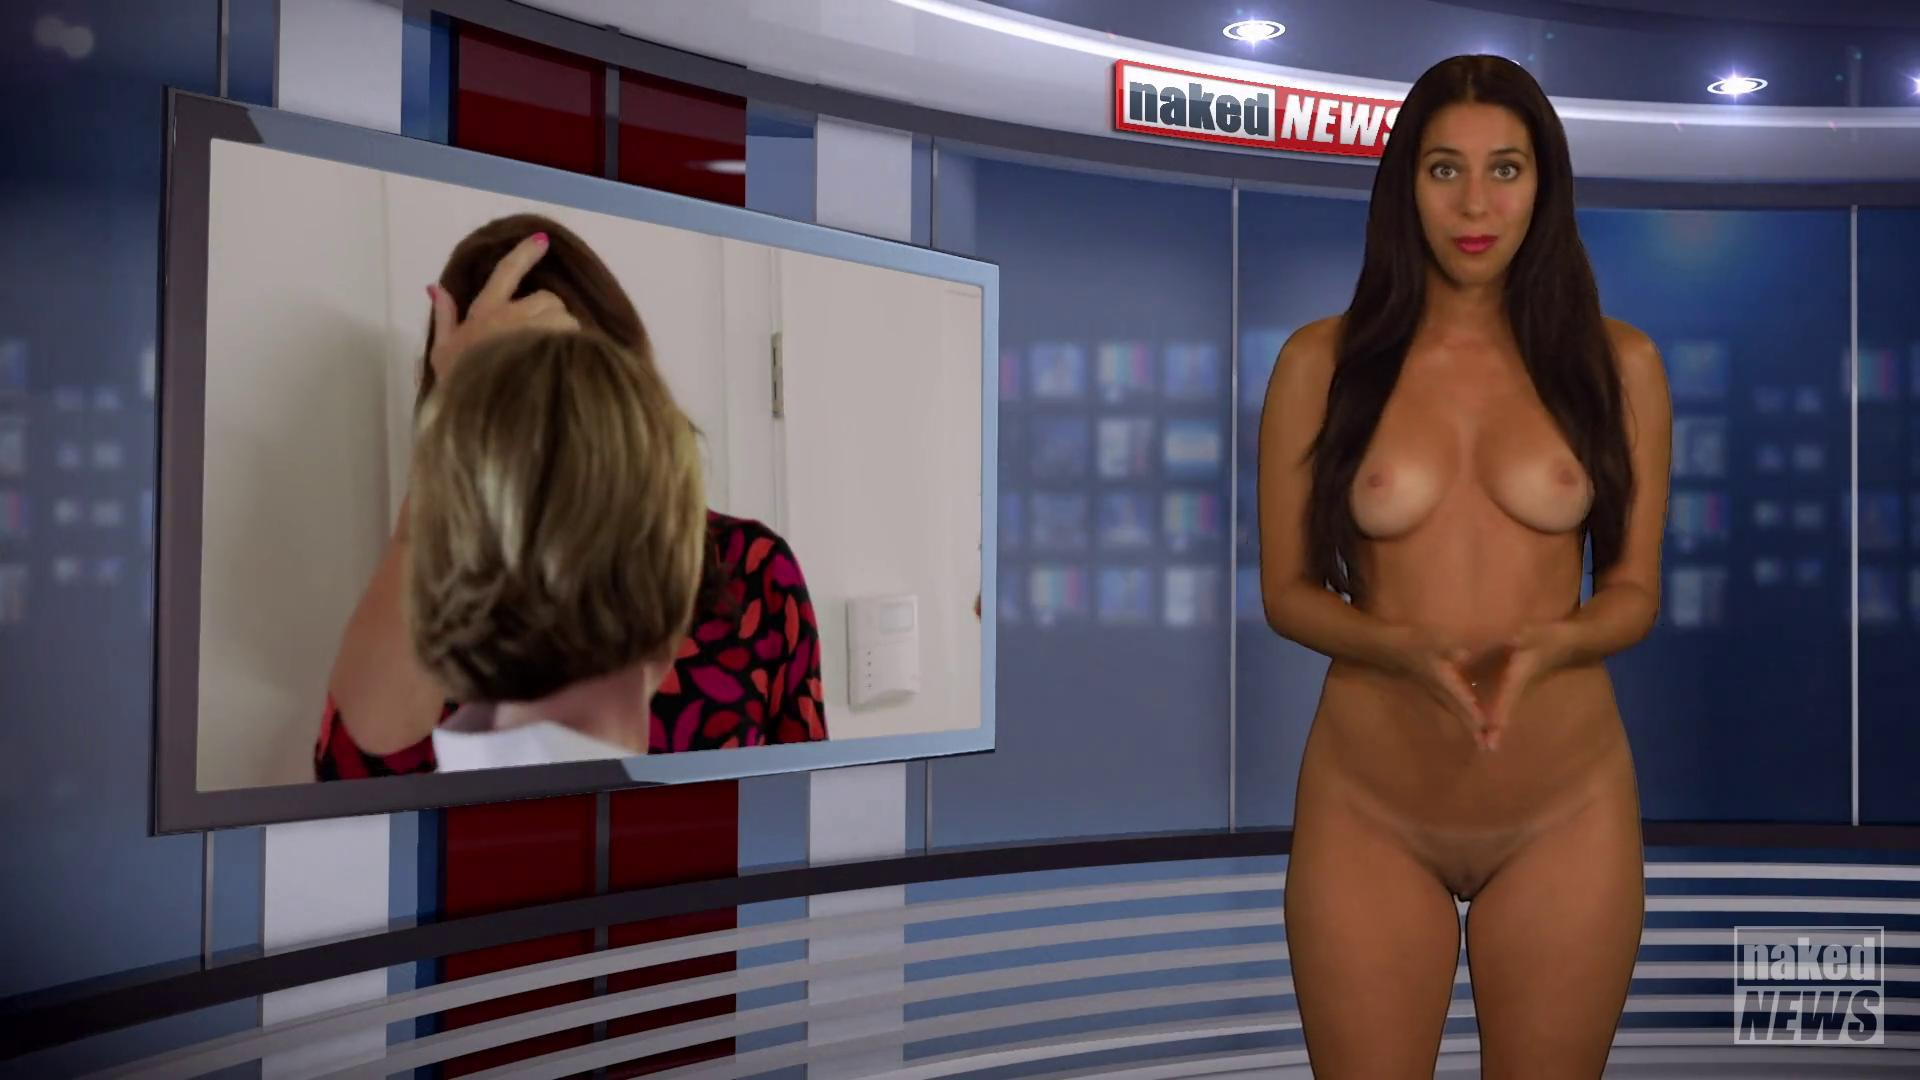 Naked news report